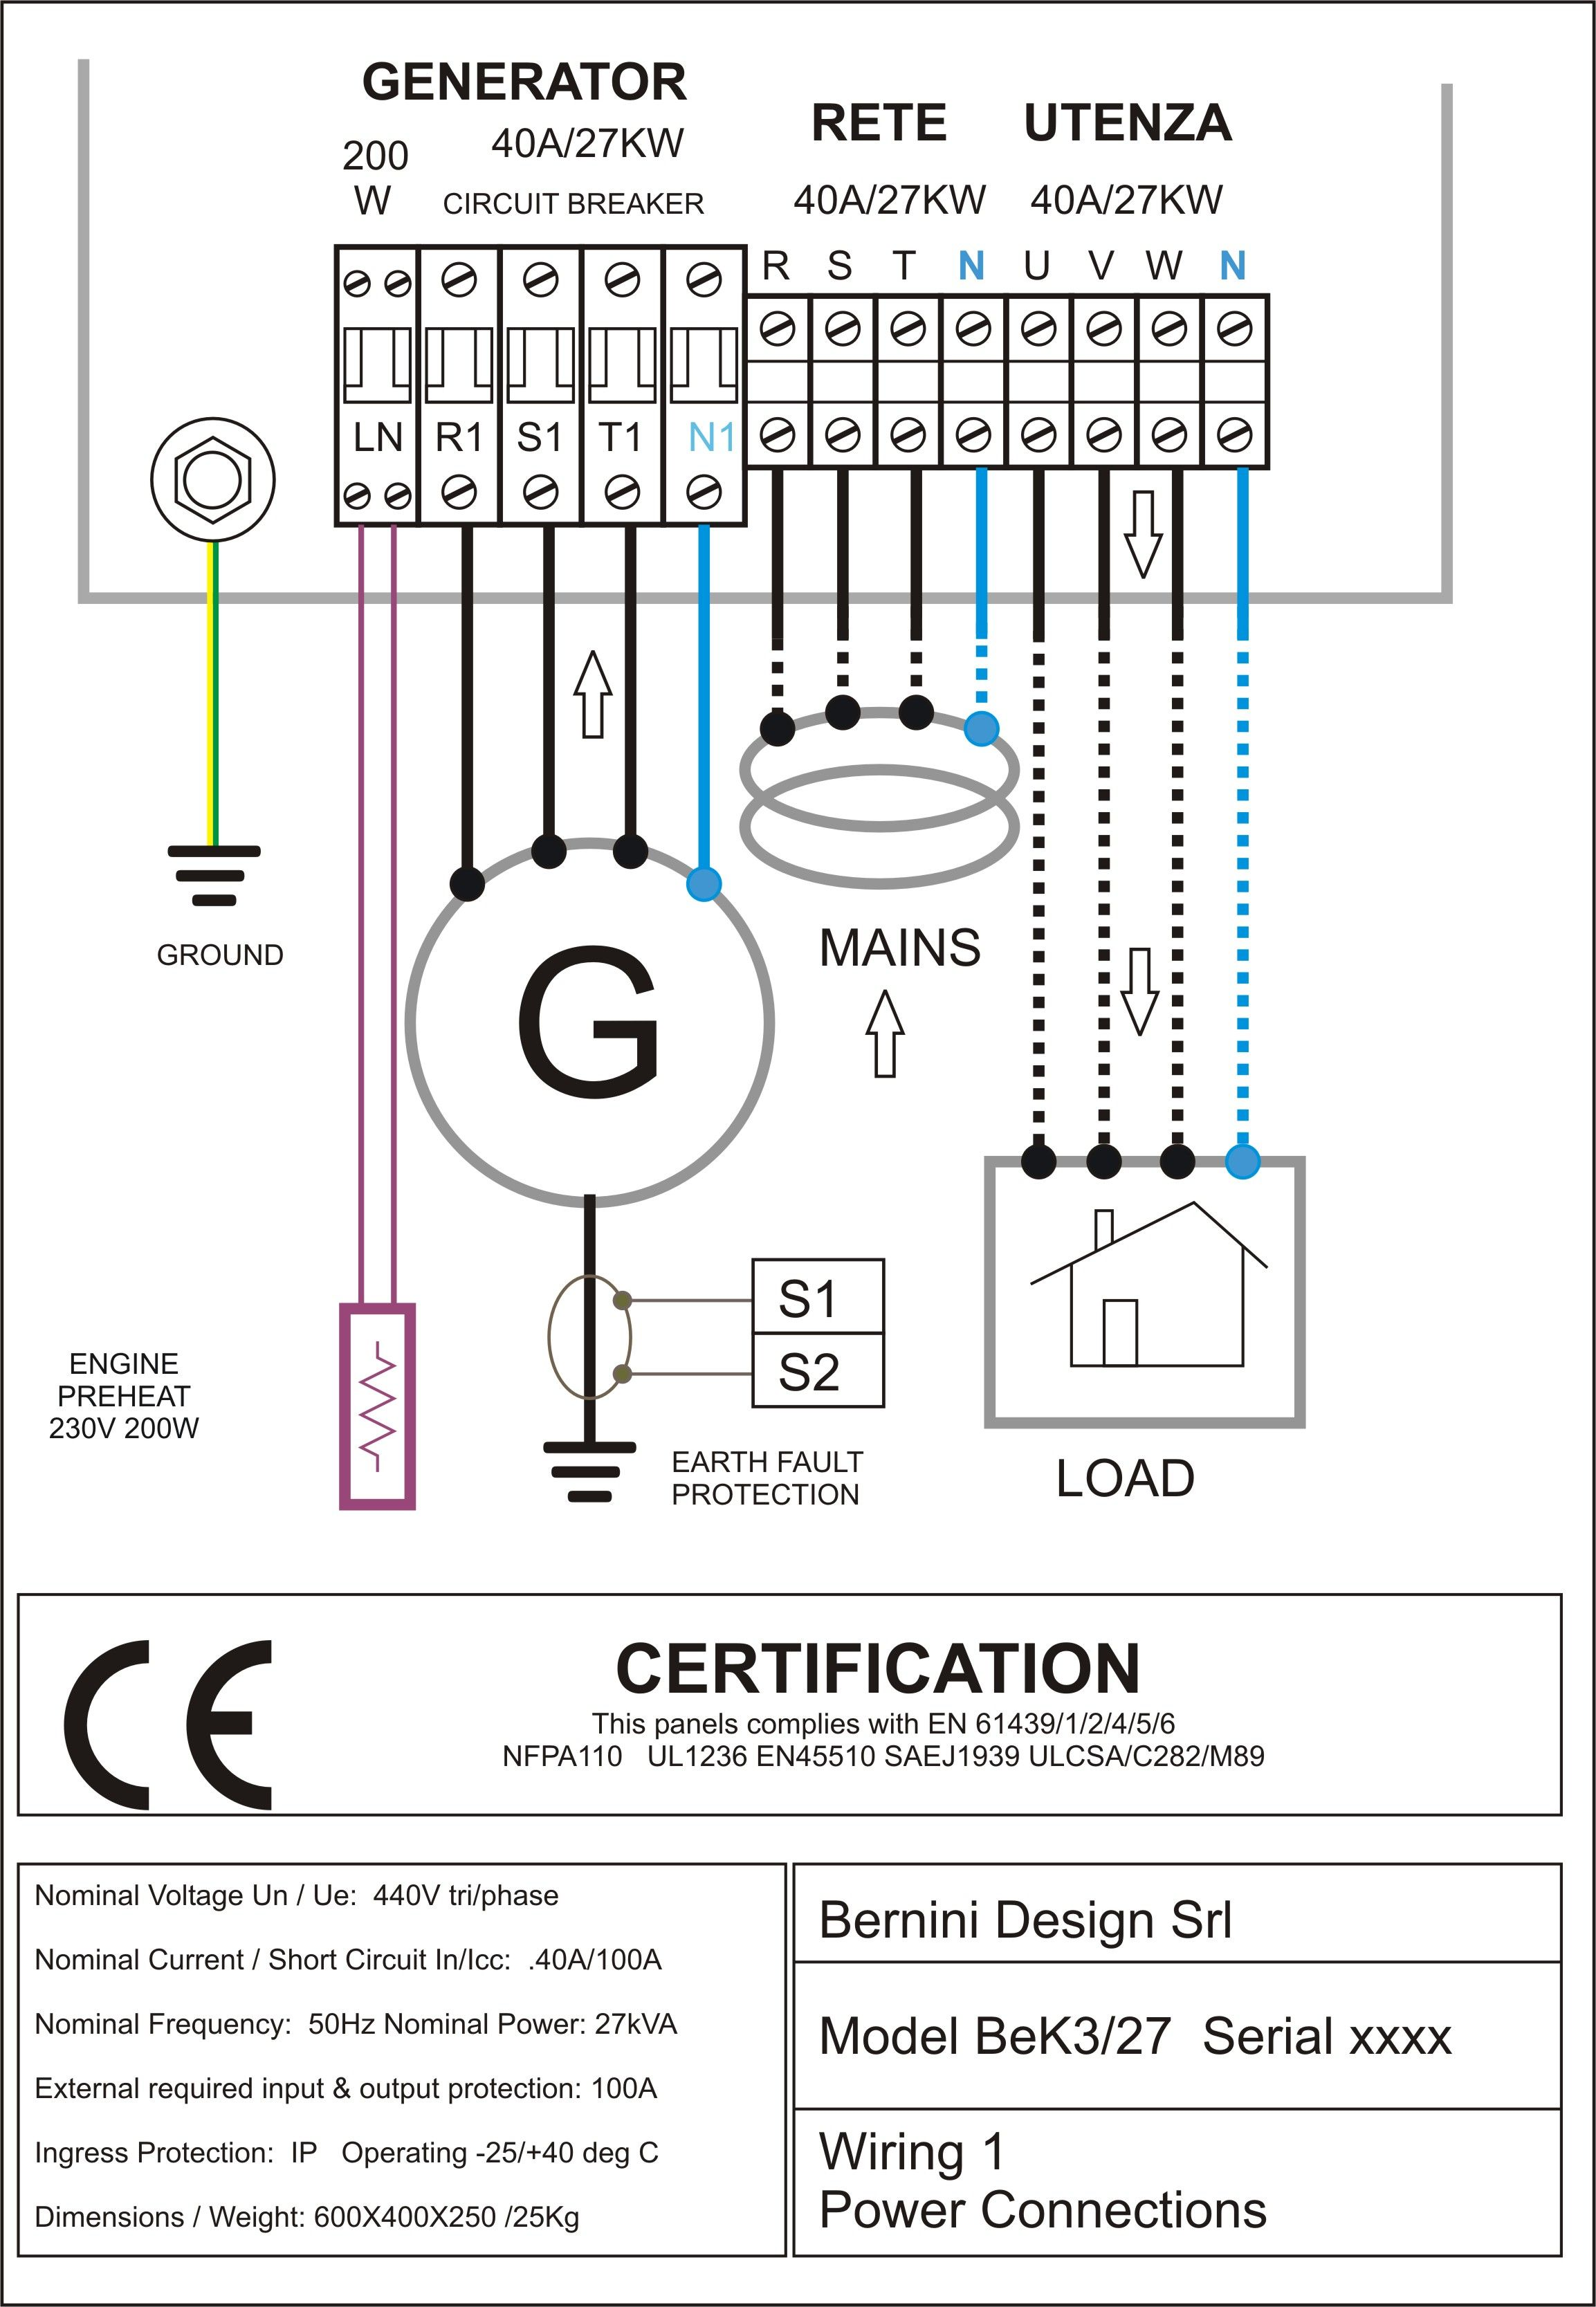 diesel generator control panel wiring diagram ac connections diesel generator control panel wiring diagram ac connections [ 2307 x 3335 Pixel ]